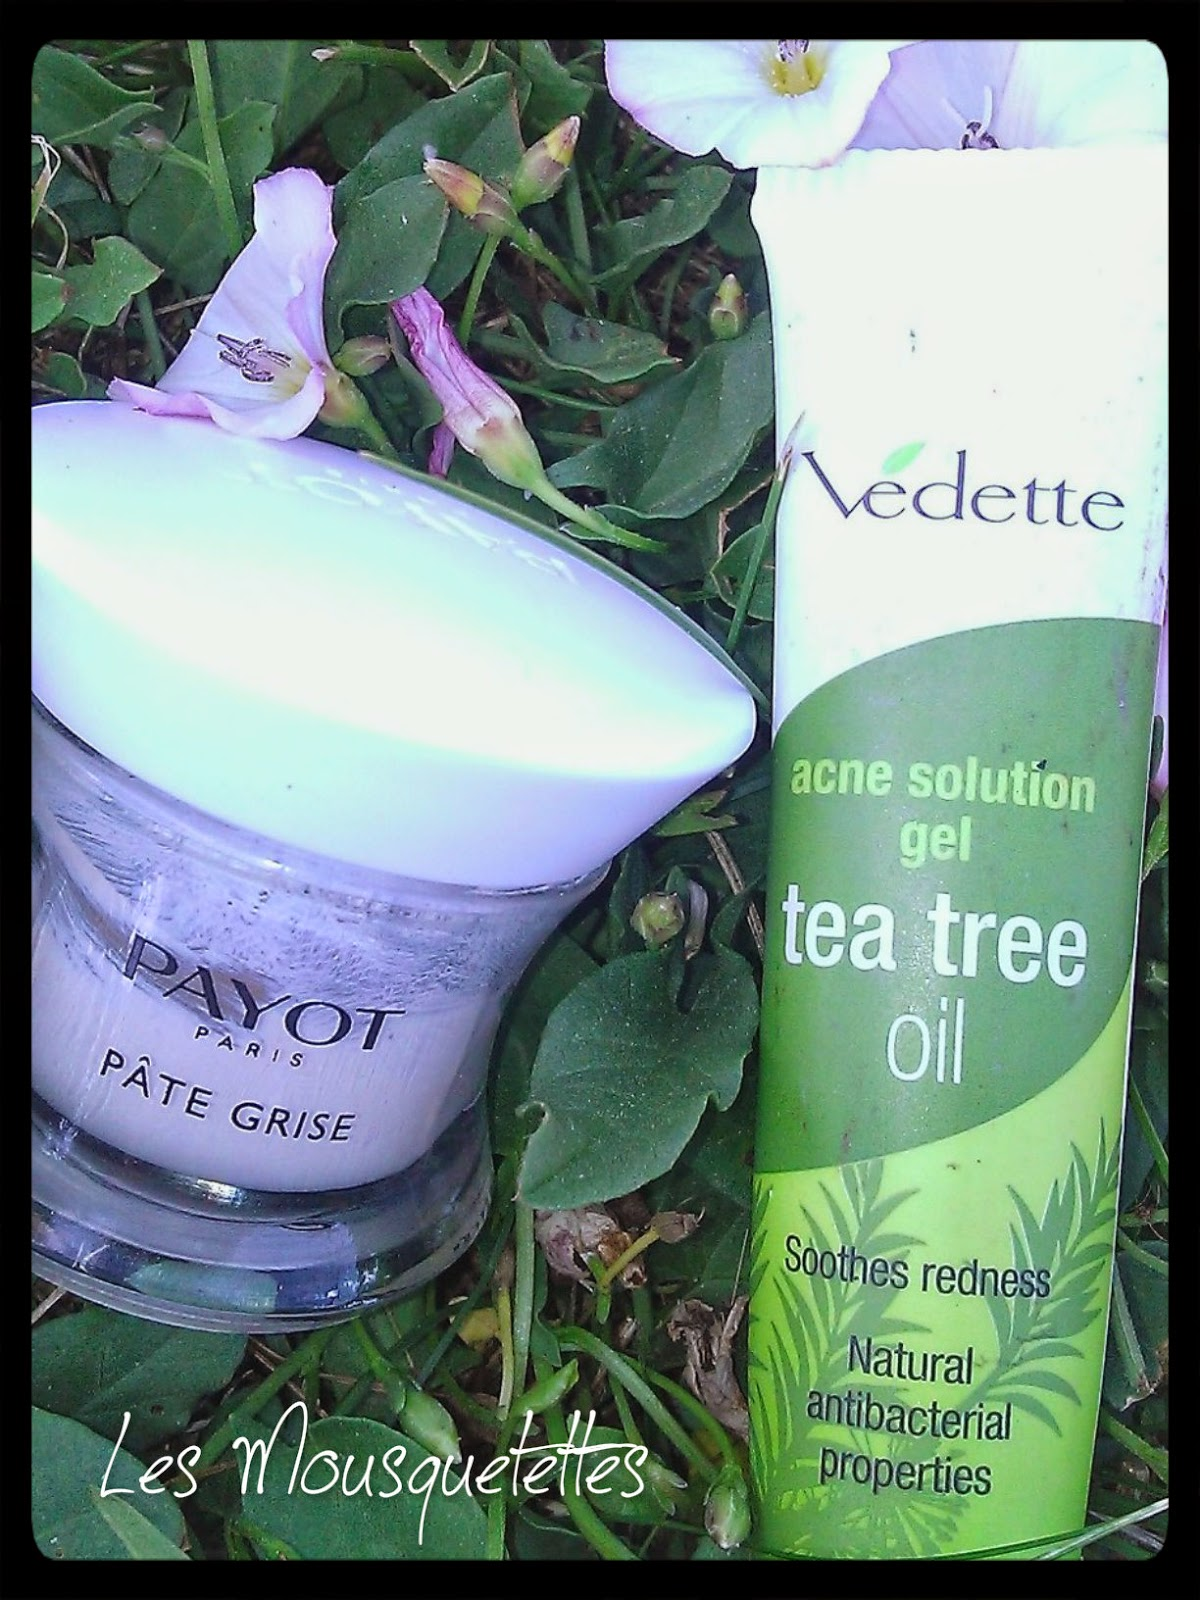 Pâte Grise Payot VS Tea Tree Oil Vedette - Les Mousquetettes©